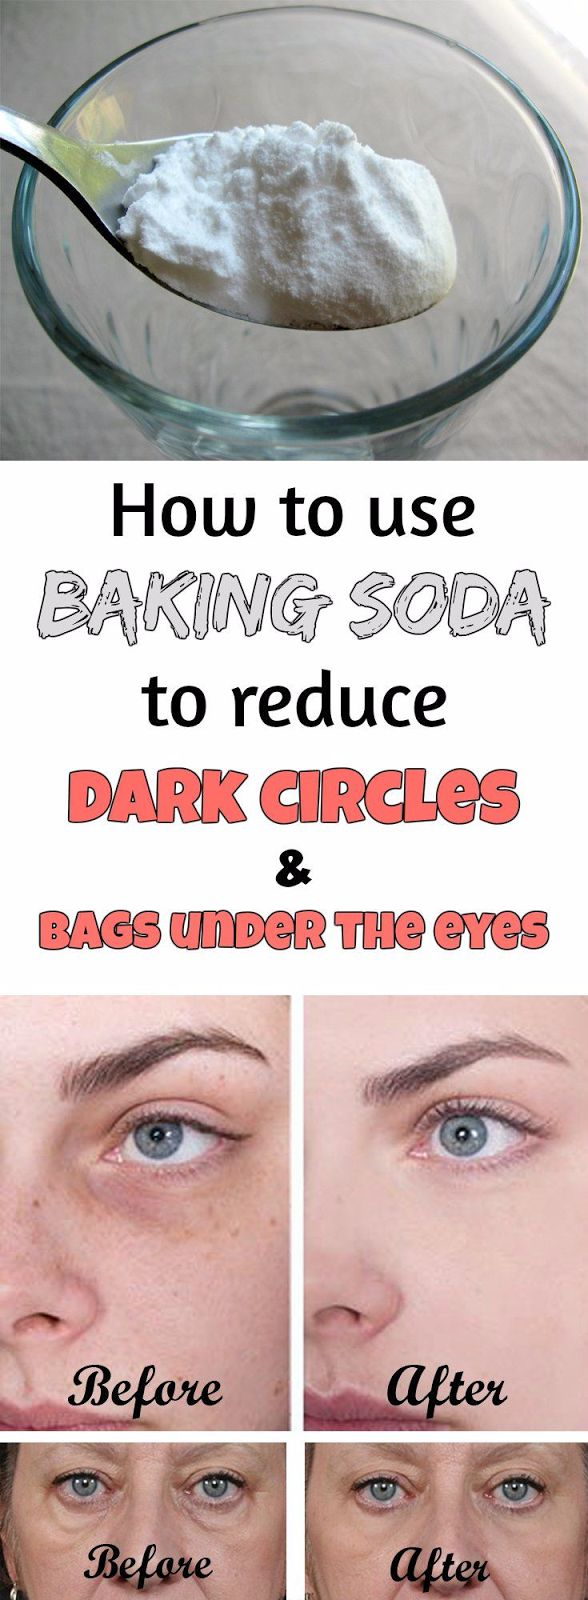 Best 25 baking soda uses ideas on pinterest bath recipes bath how to use baking soda to reduce dark circles and bags under the eyes ccuart Images